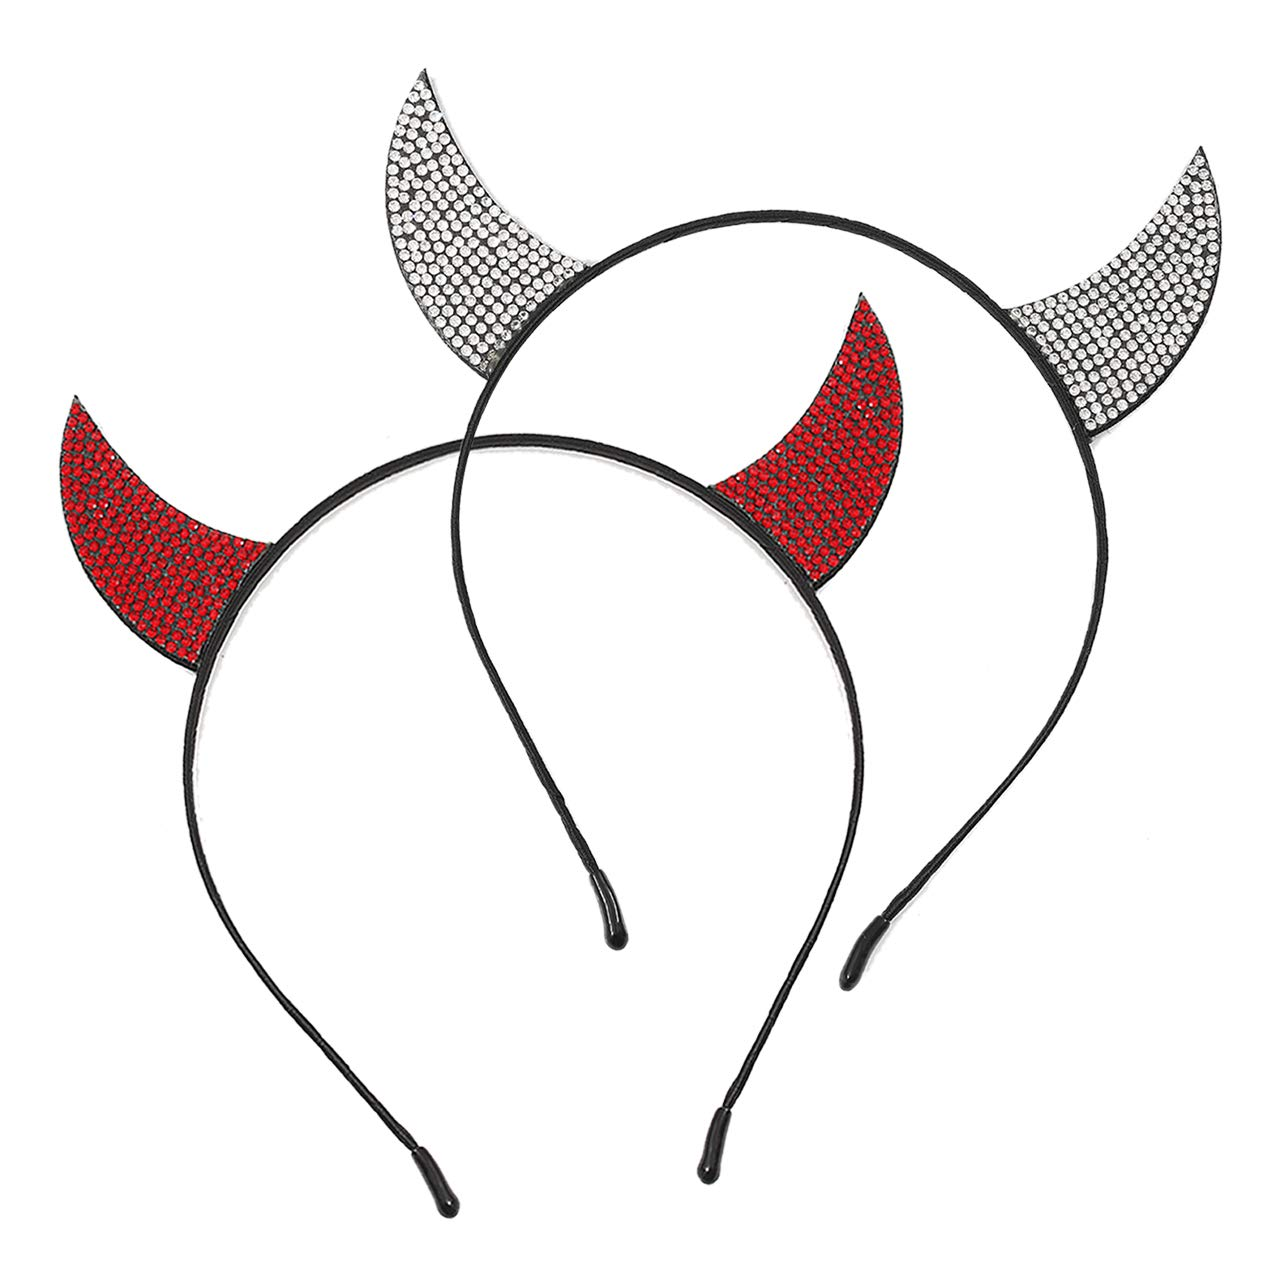 vogueknock Devil Horns Halloween Headband Faux Rhinestone Horn Costume Cat Ear Headband for Women Girls (Silver and Red Crystal (Set 2pcs)) by vogueknock